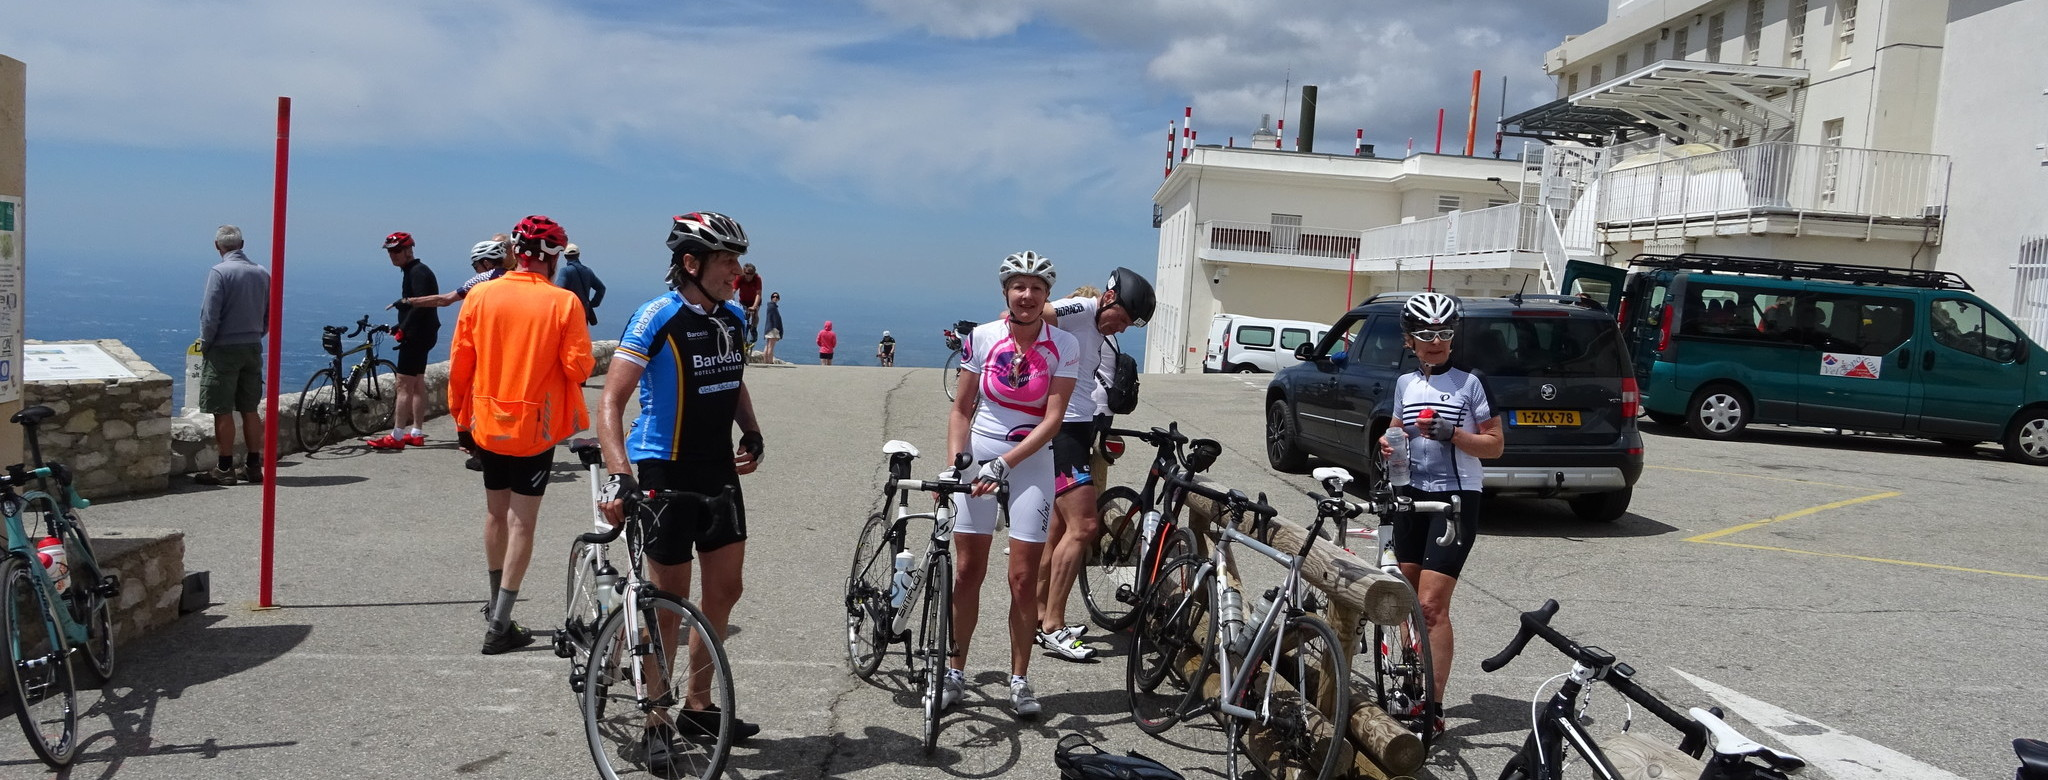 Ventoux: at the top